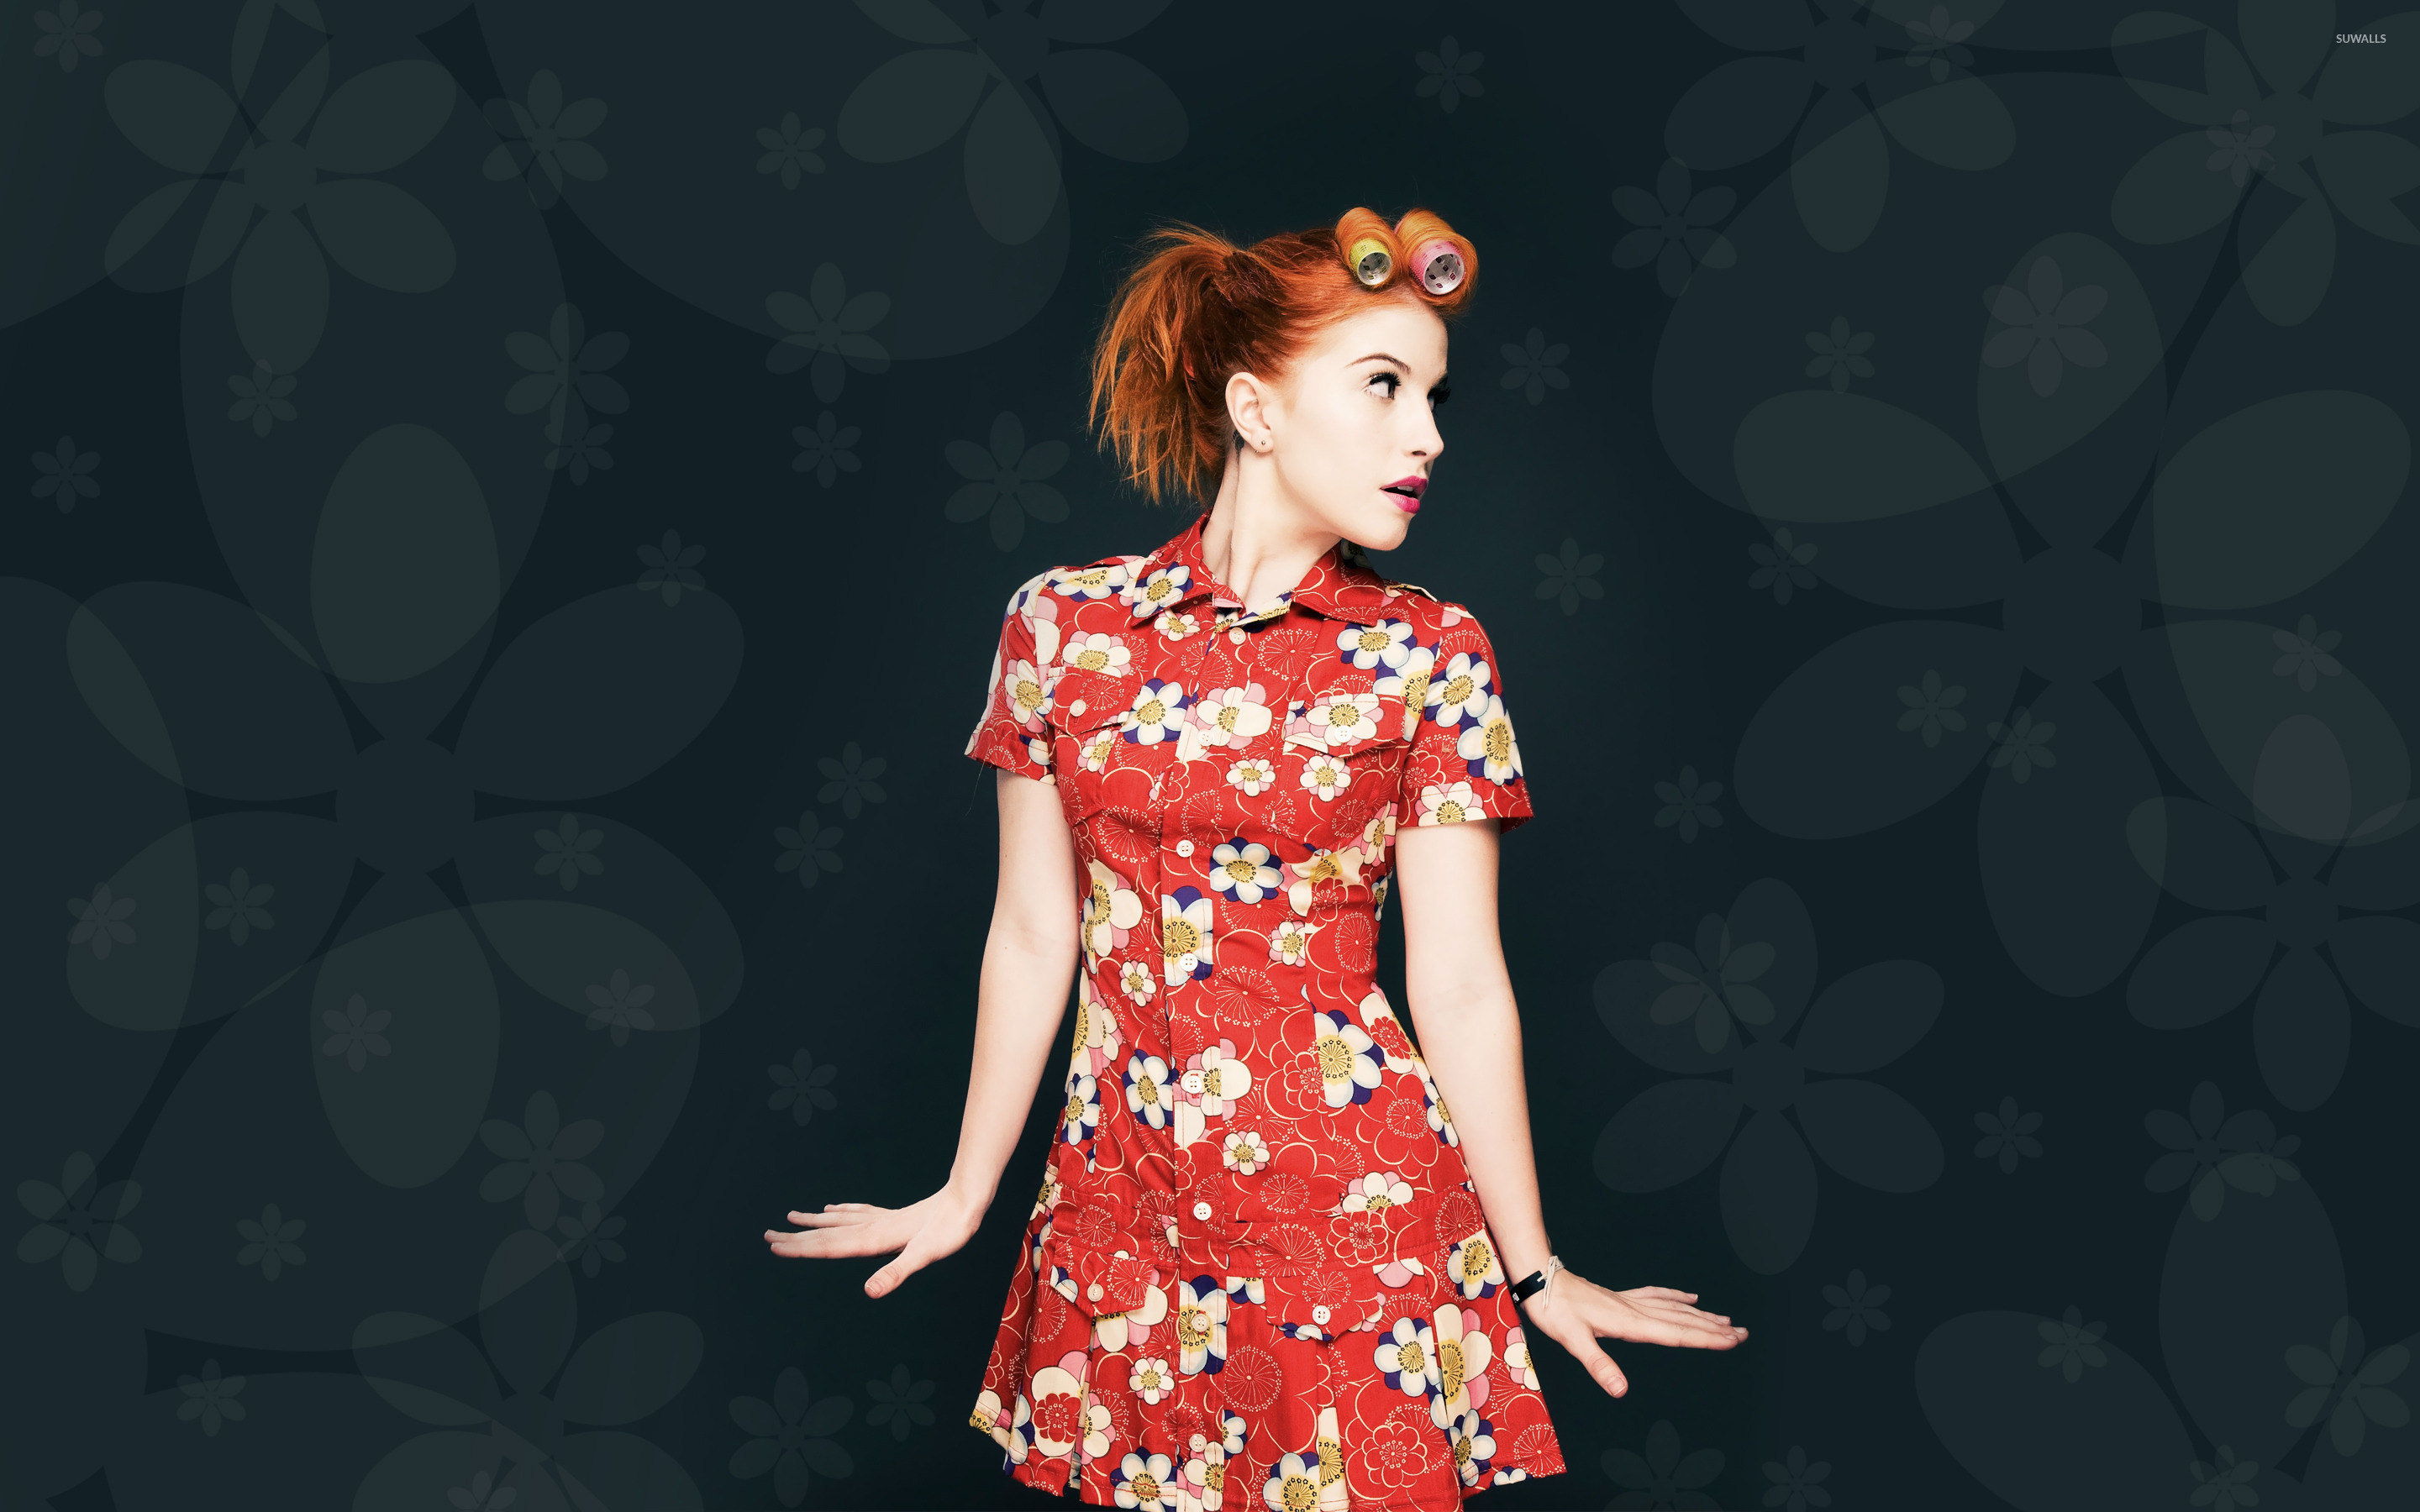 Hayley Williams 16 Wallpaper Celebrity Wallpapers 21415